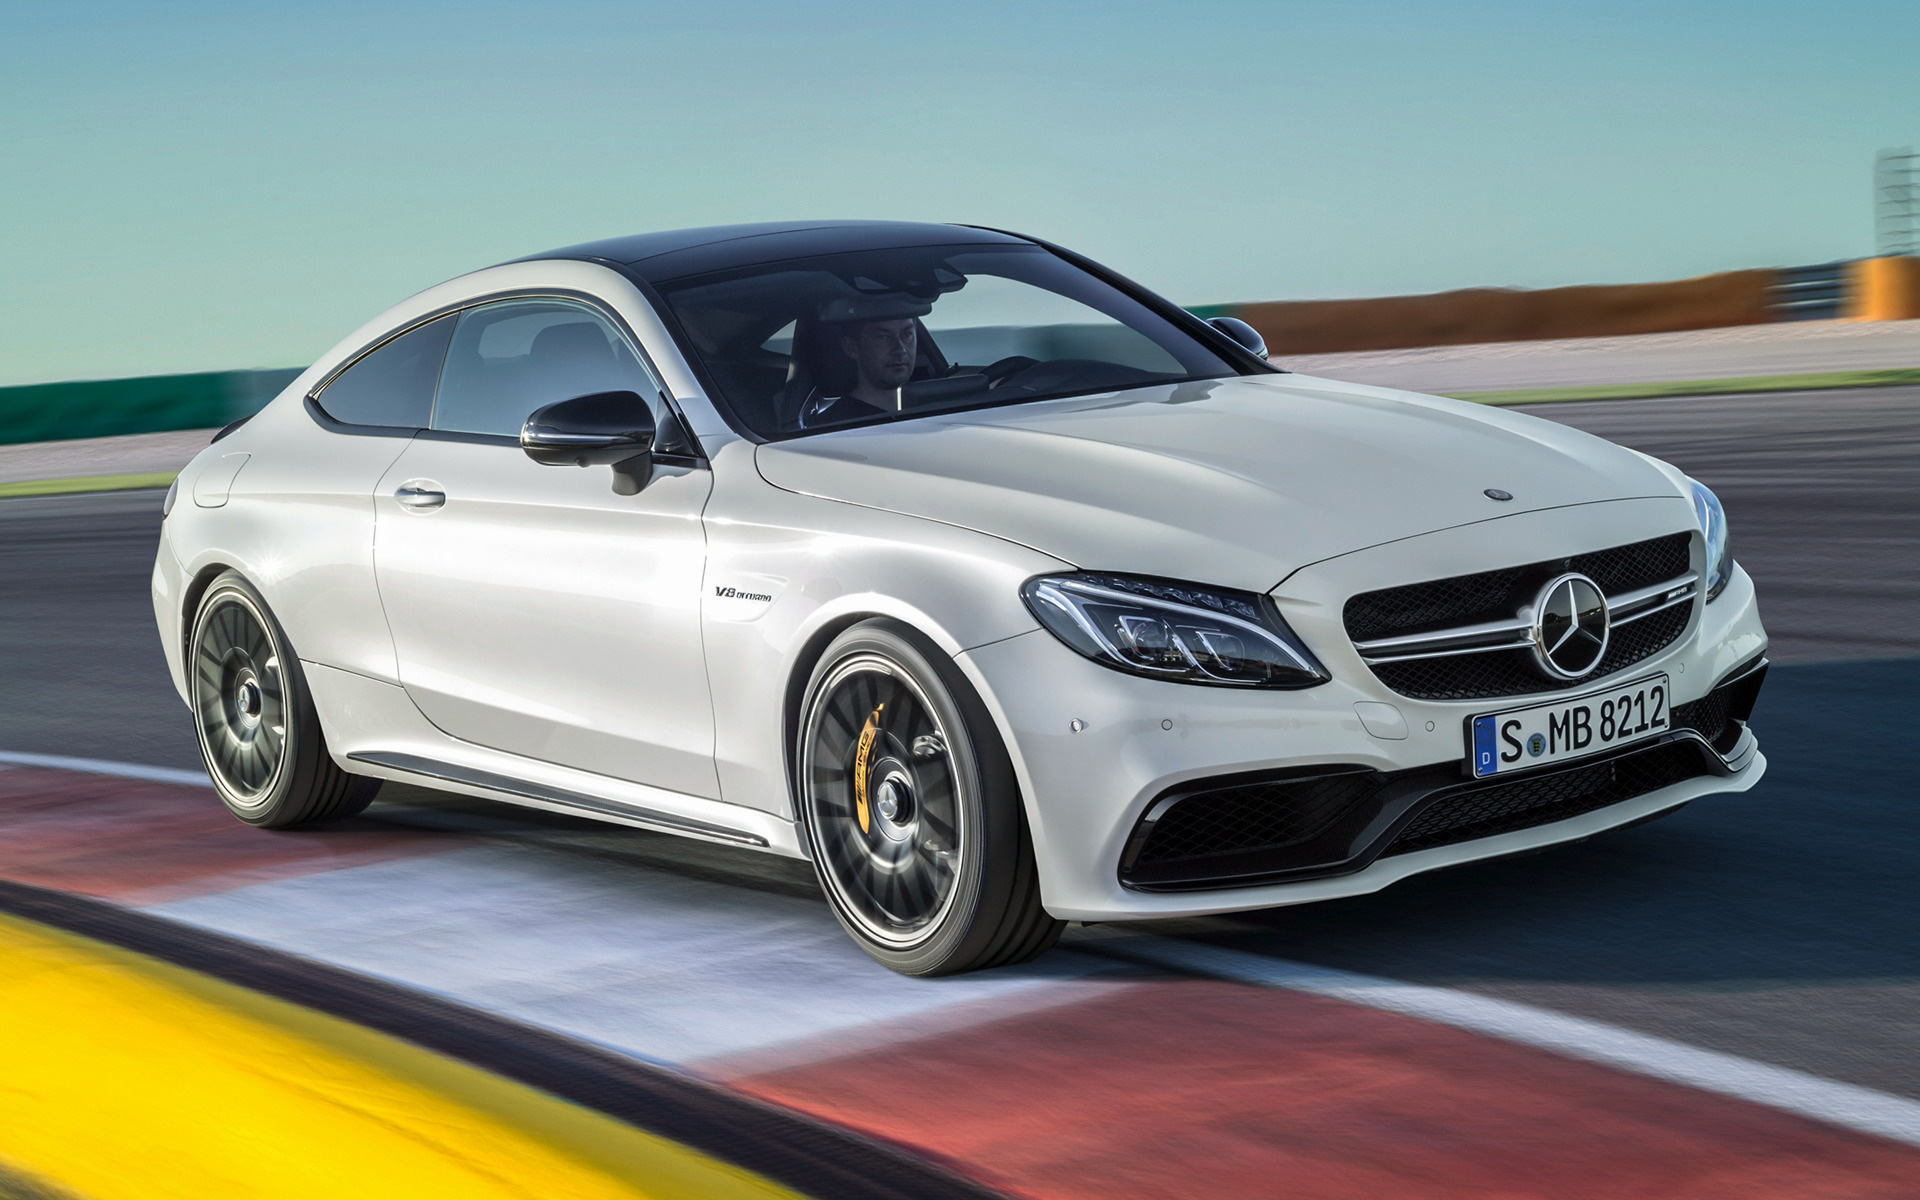 2016 mercedes amg c 63 s coupe wallpapers and hd images. Black Bedroom Furniture Sets. Home Design Ideas